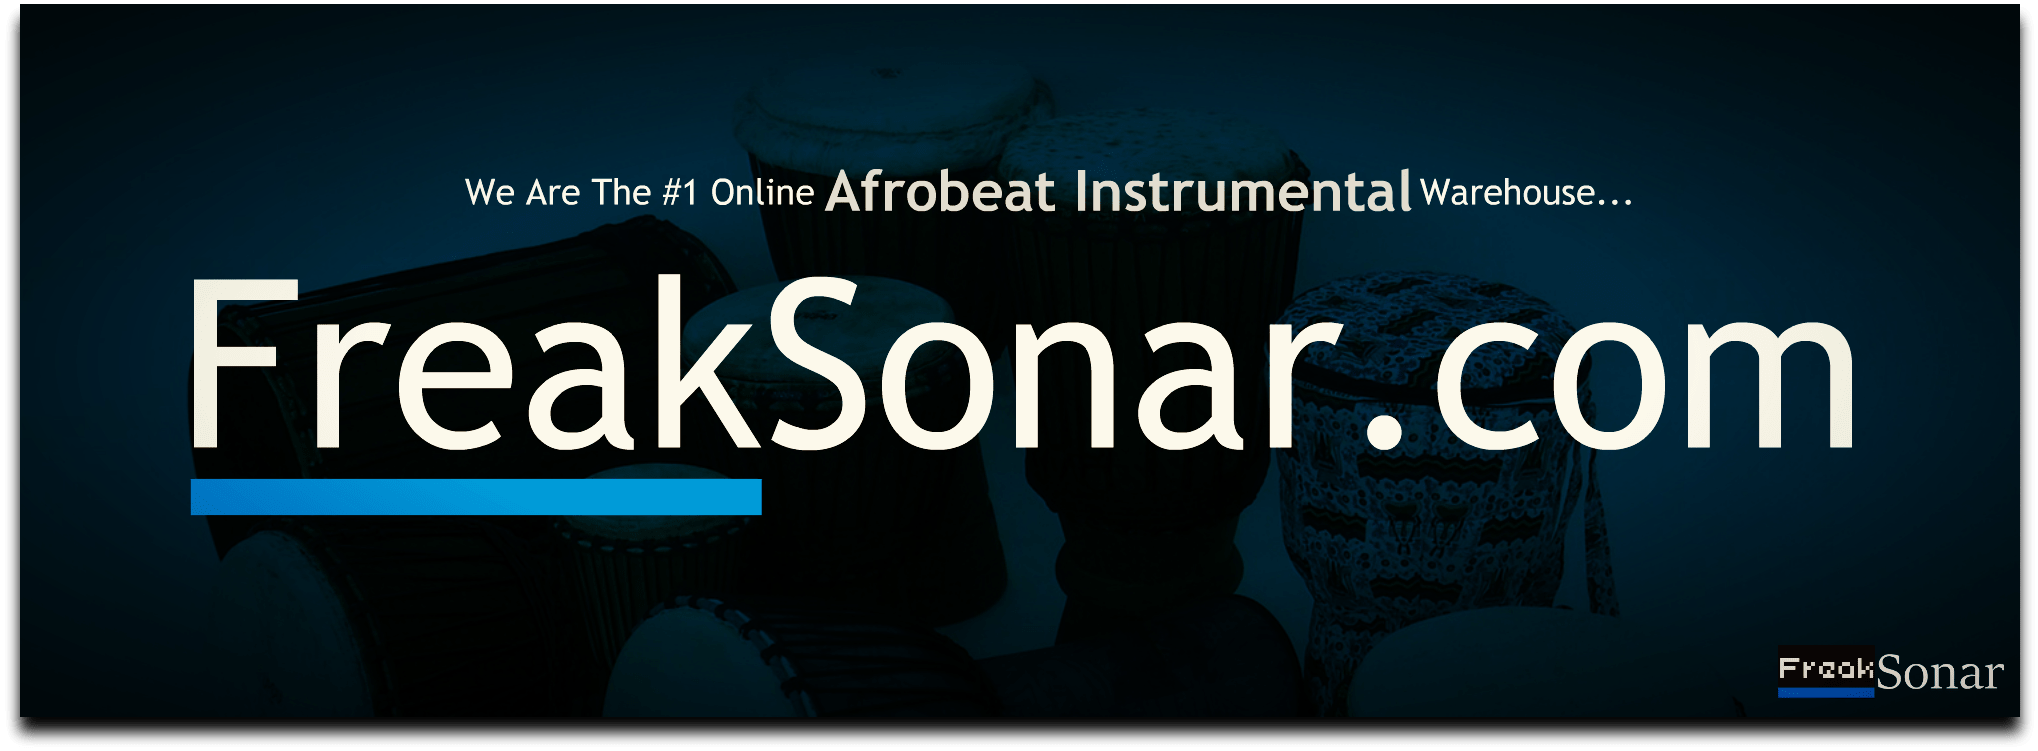 Afrobeat Instrumental in FreakSonar